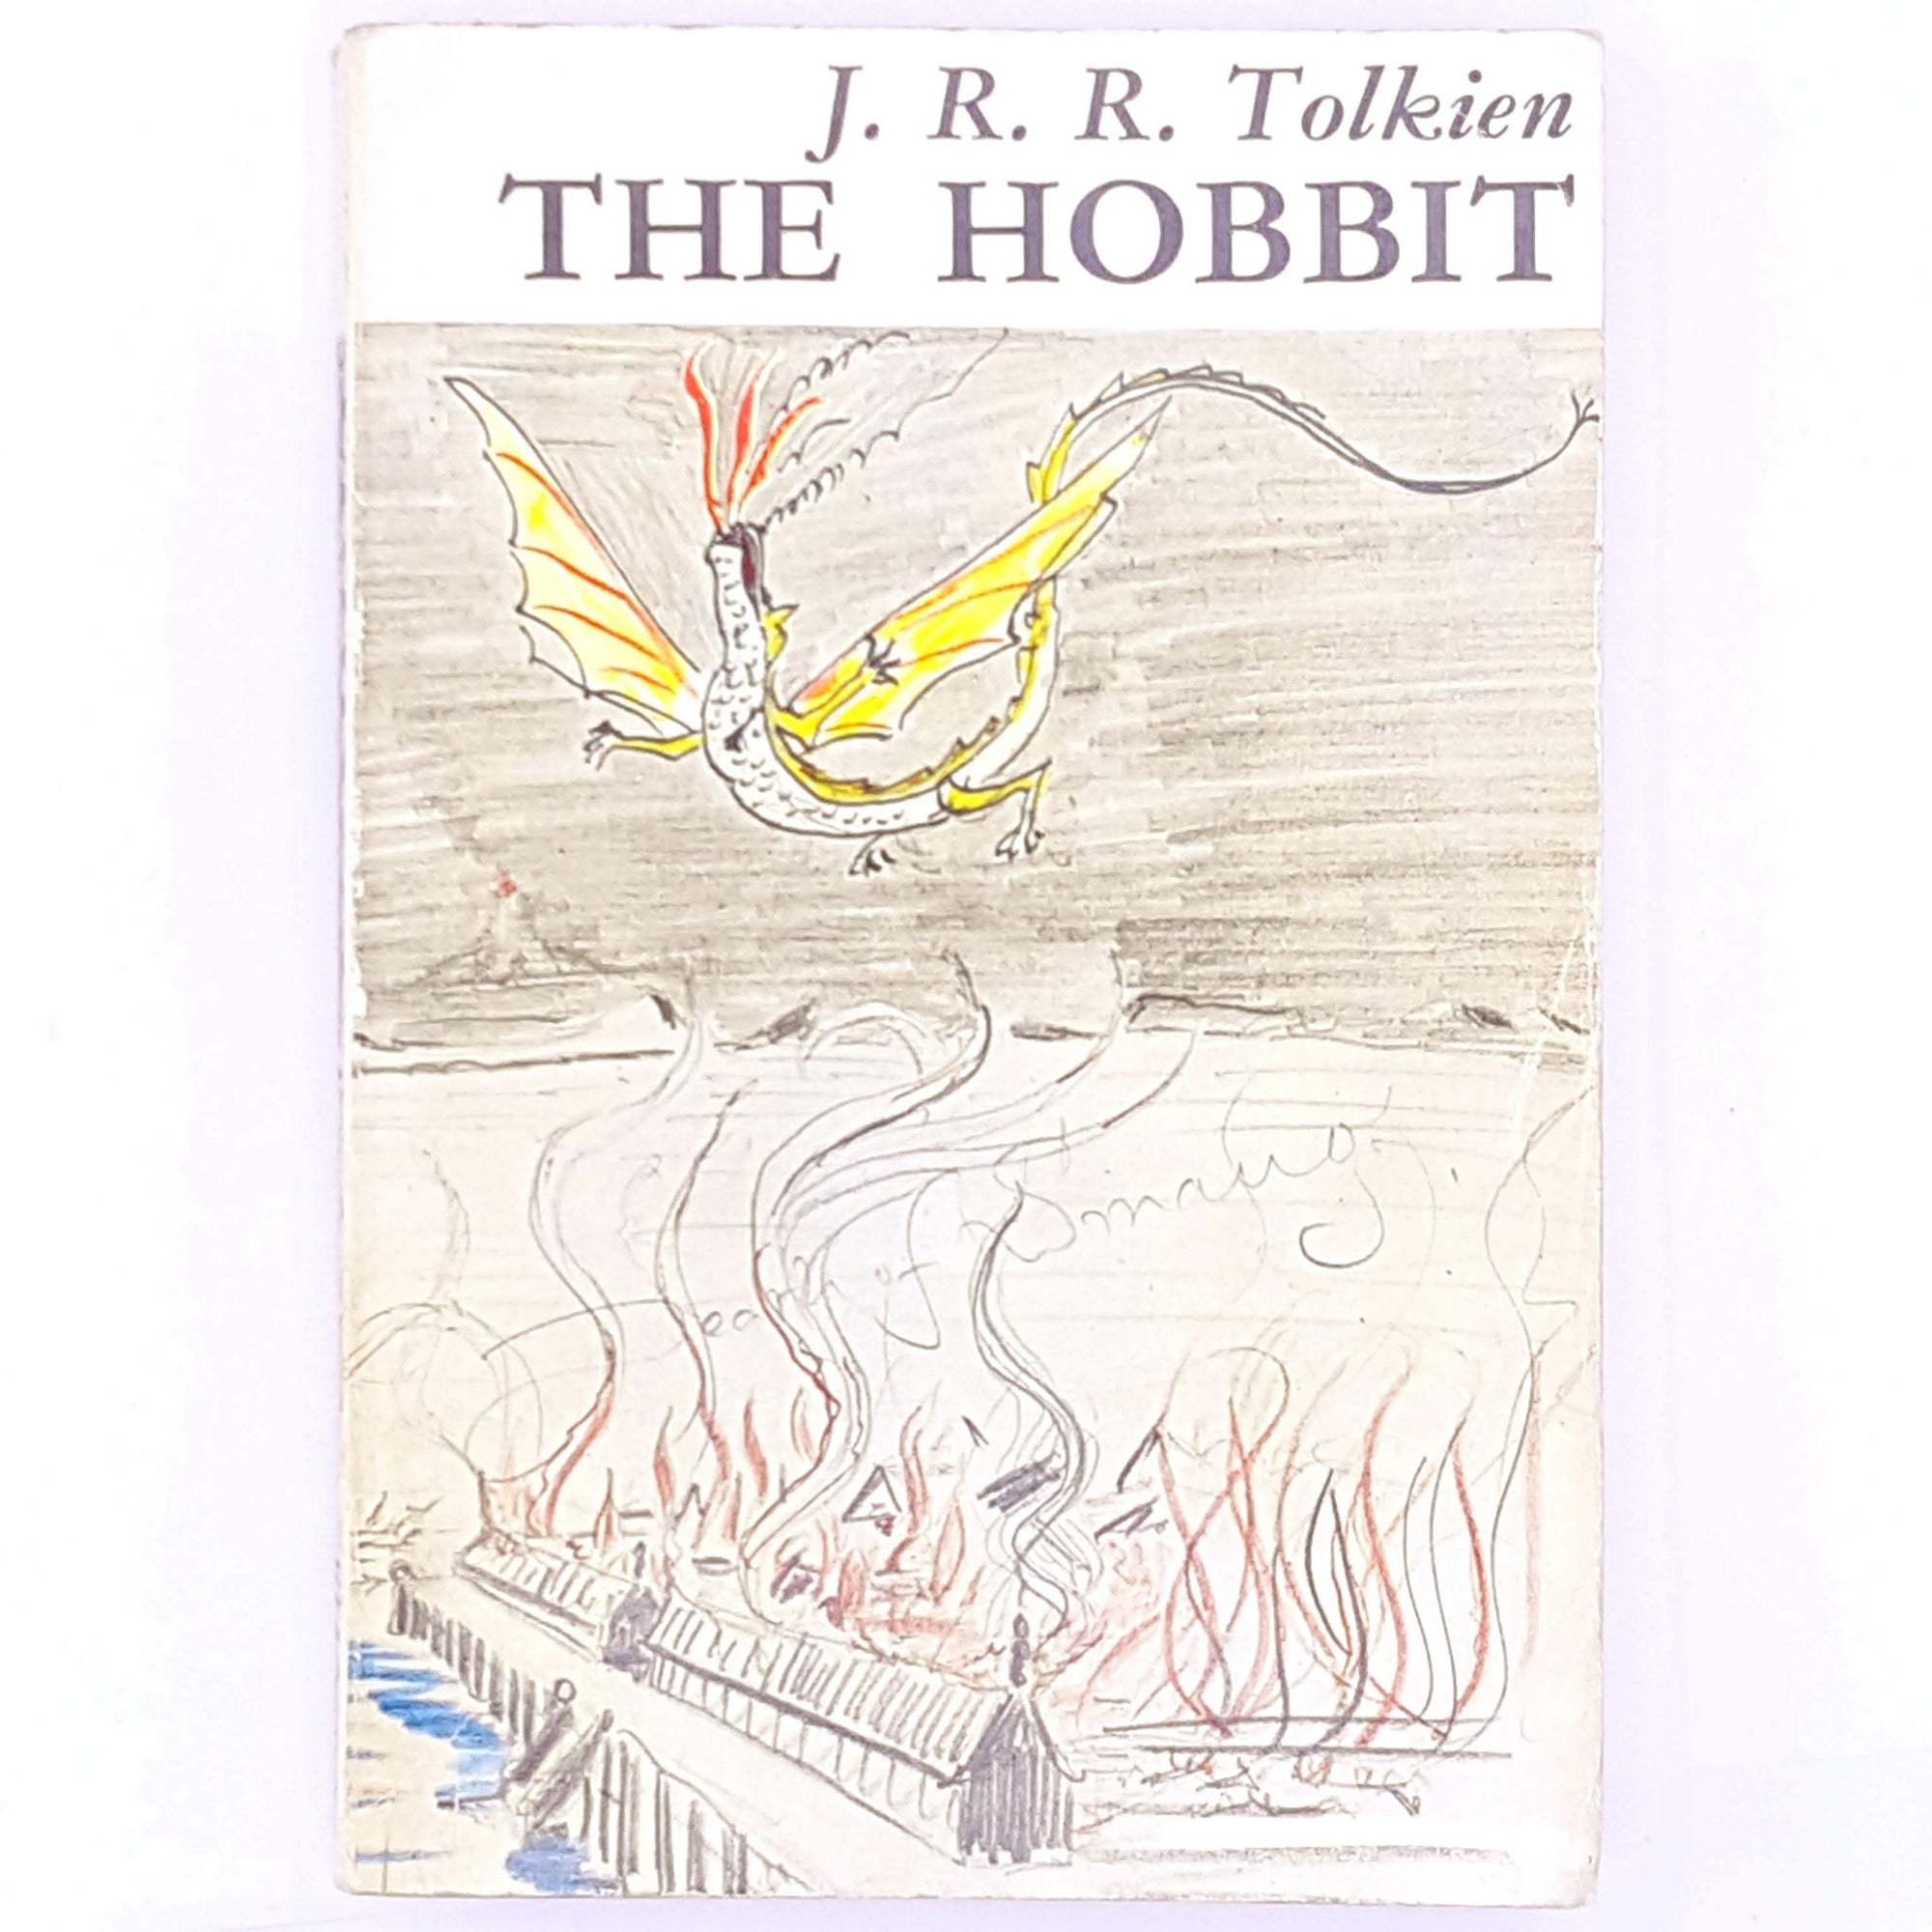 J.R.R. Tolkien - The Hobbit